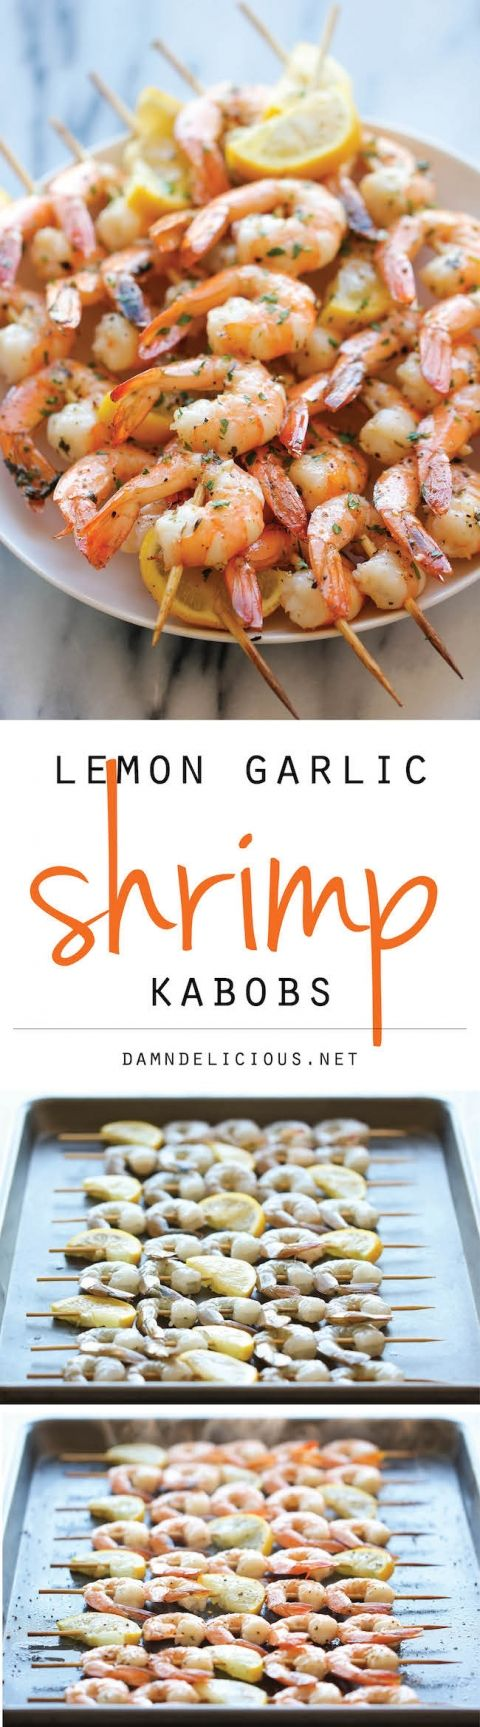 how to cook shrimp skewers in oven